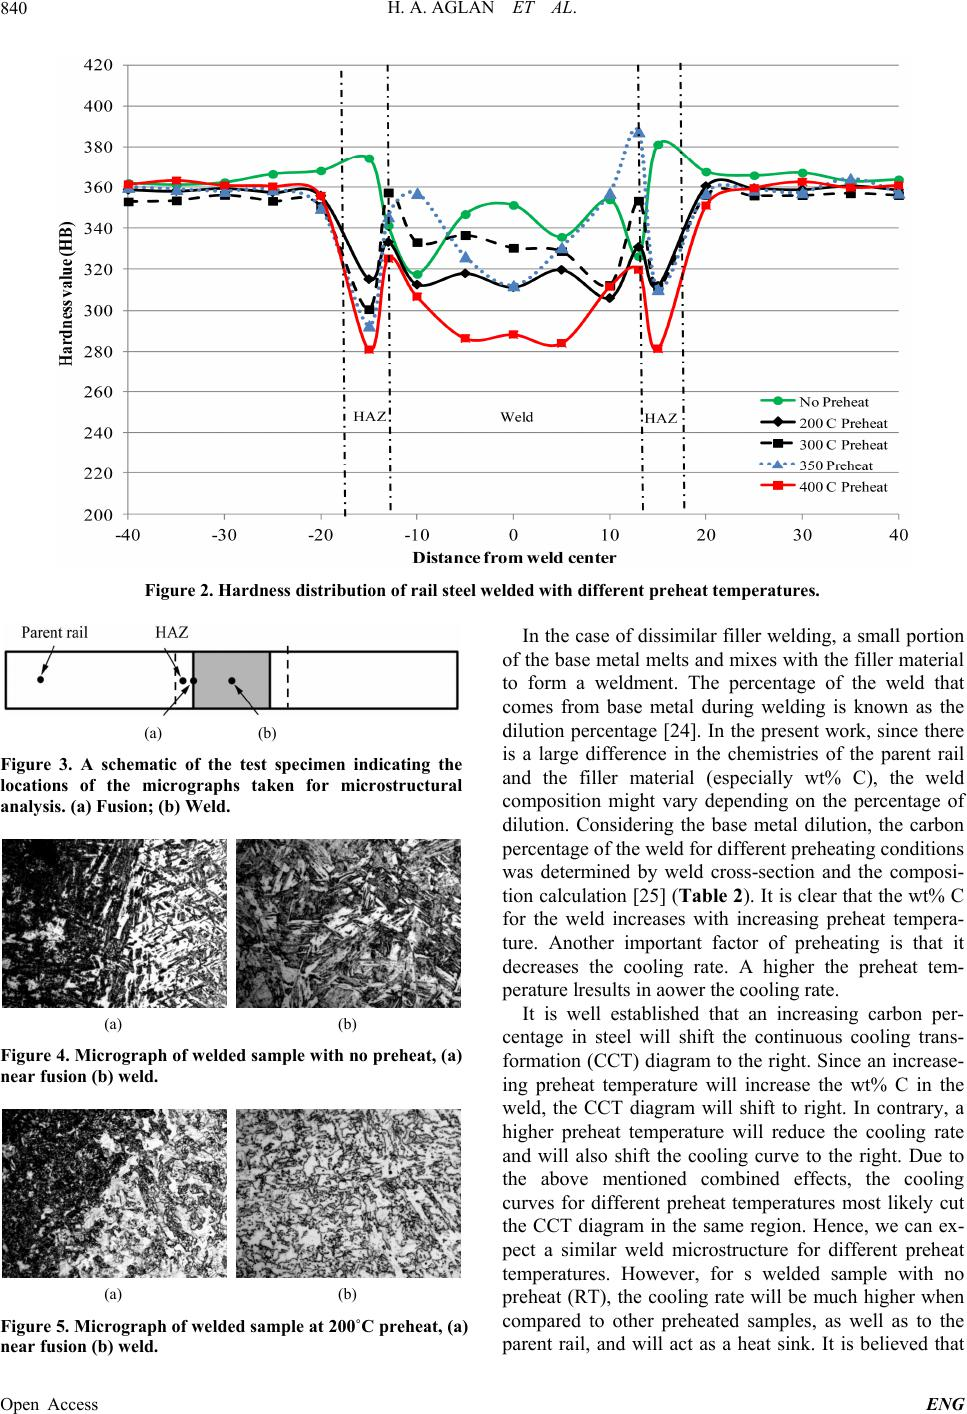 Effect Of Preheating Temperature On The Mechanical And Fracture Welding Cct Diagram H A Aglan Et Al